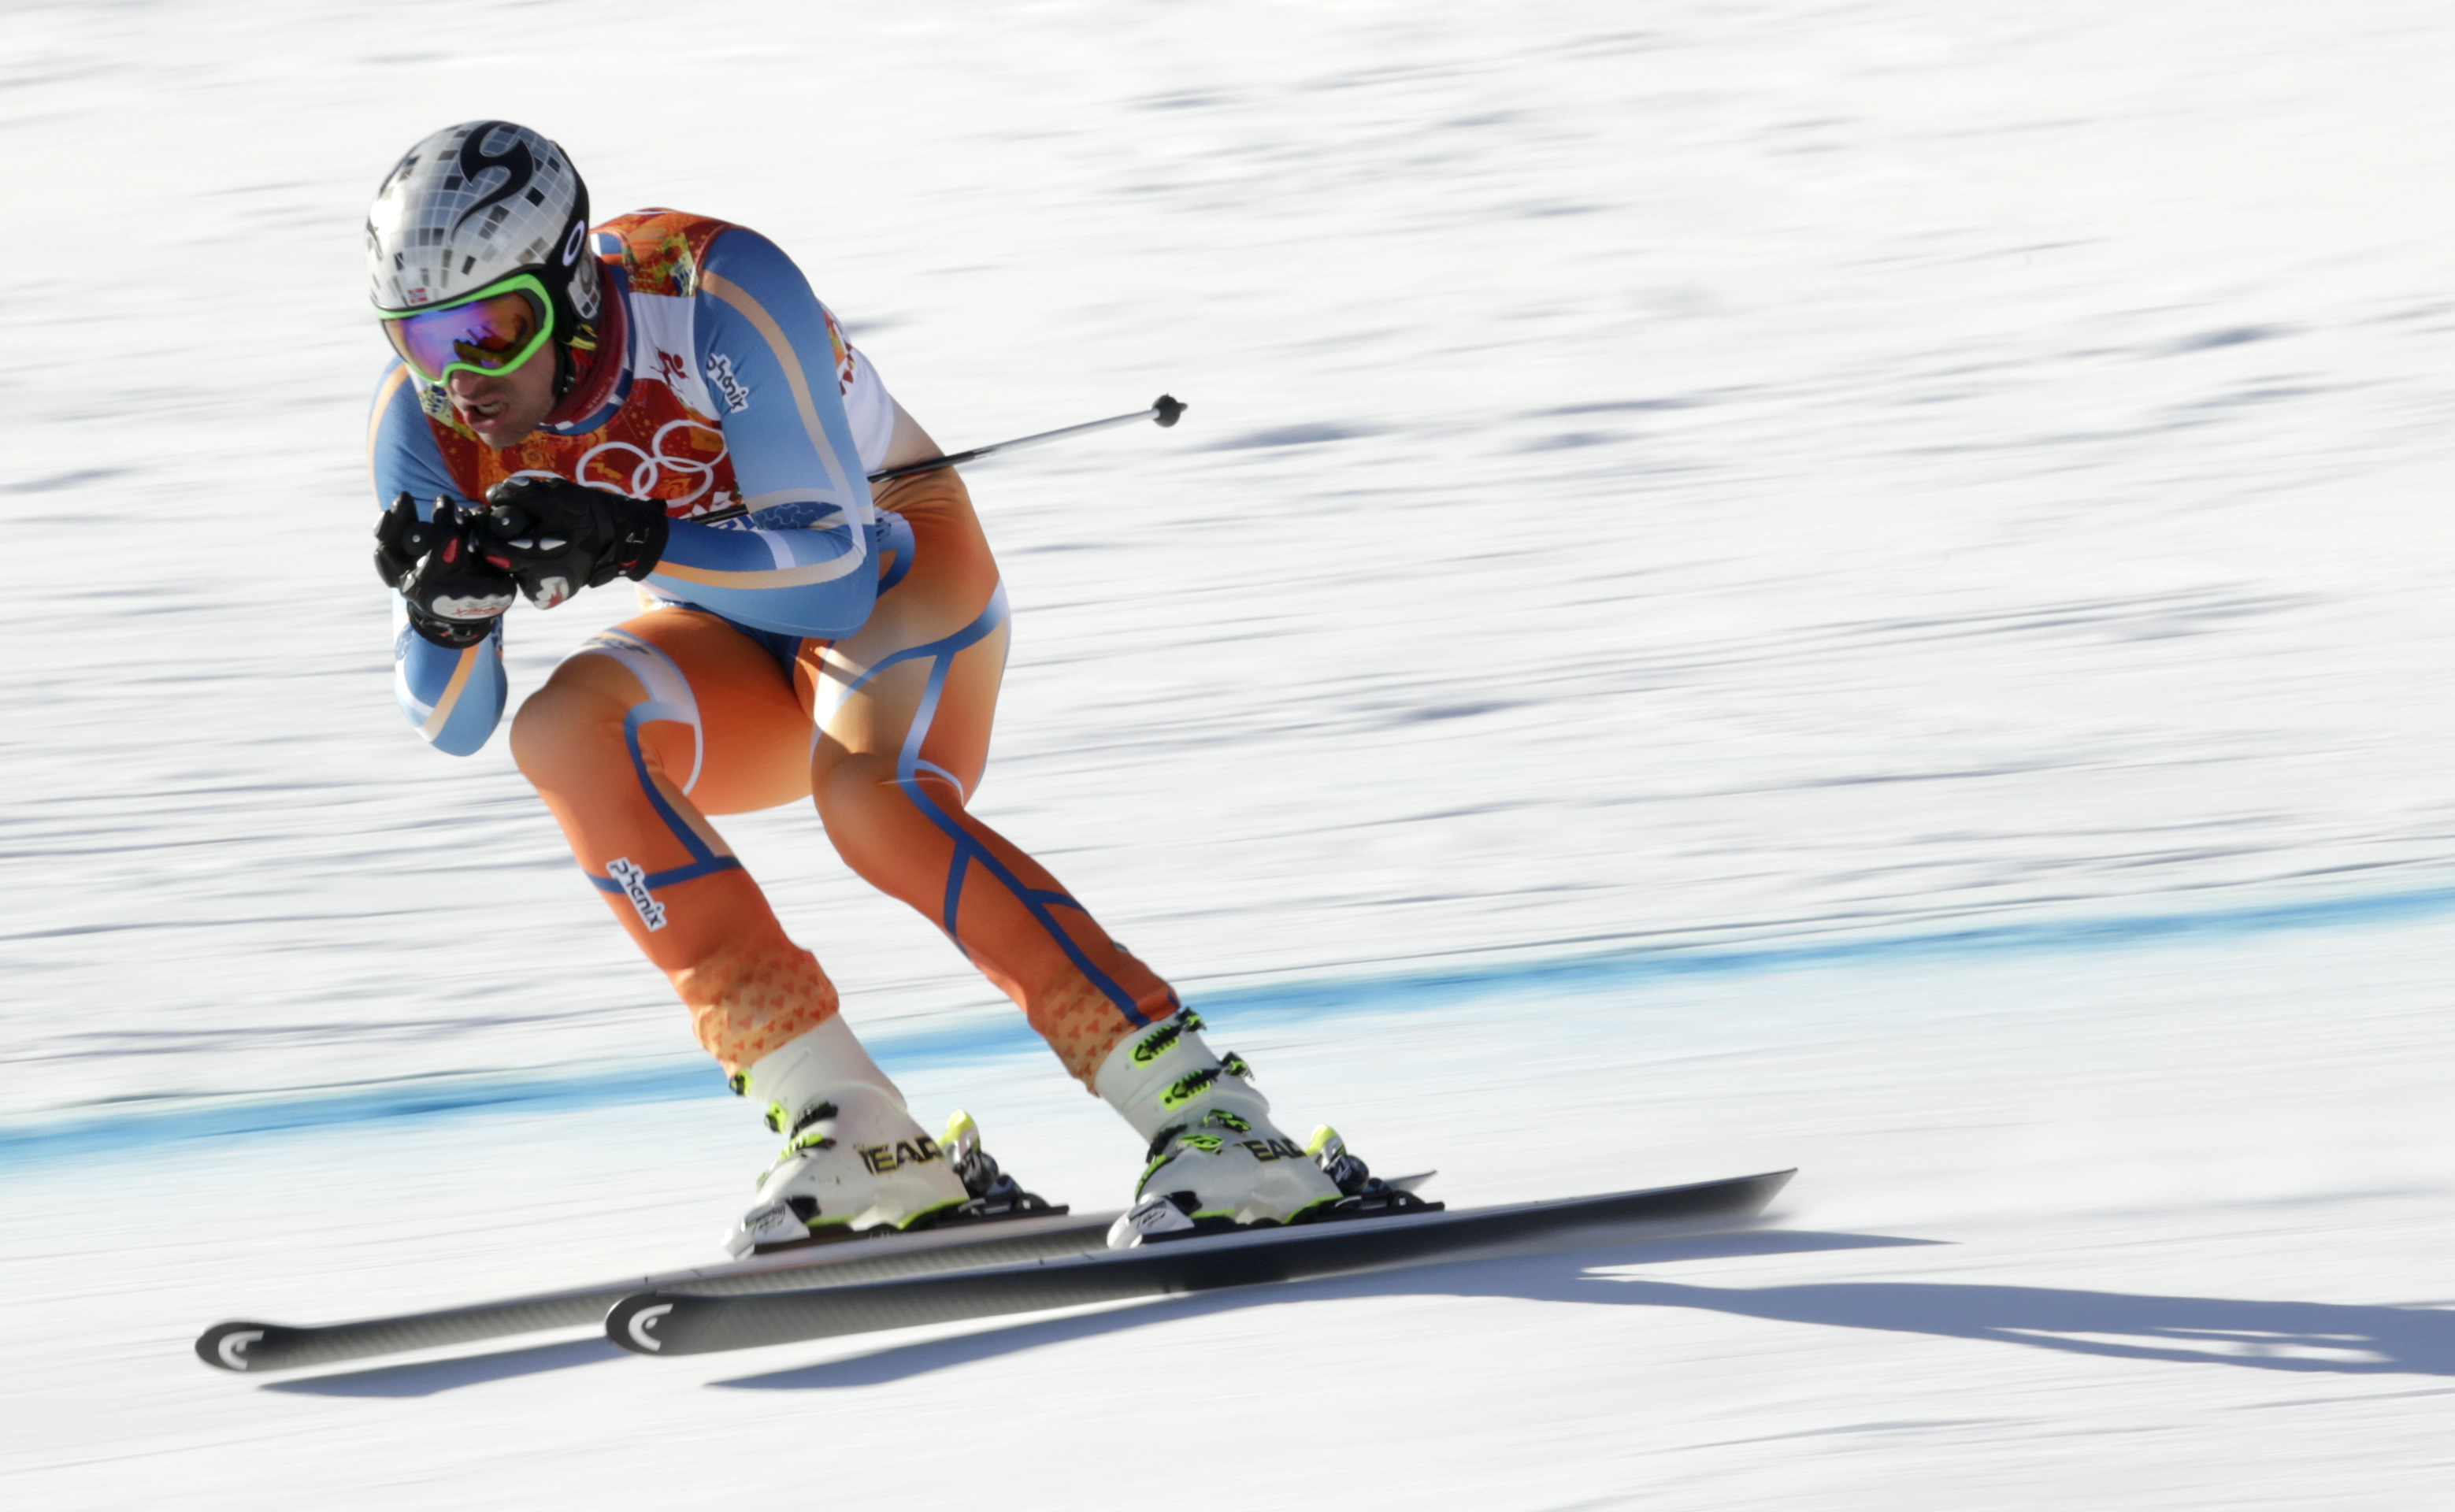 Norway's Aksel Lund Svindal speeds down the course during a men's downhill training run for the Sochi 2014 Winter Olympics, Saturday, Feb. 8, 2014, in Krasnaya Polyana, Russia.(AP Photo/Charles Krupa)